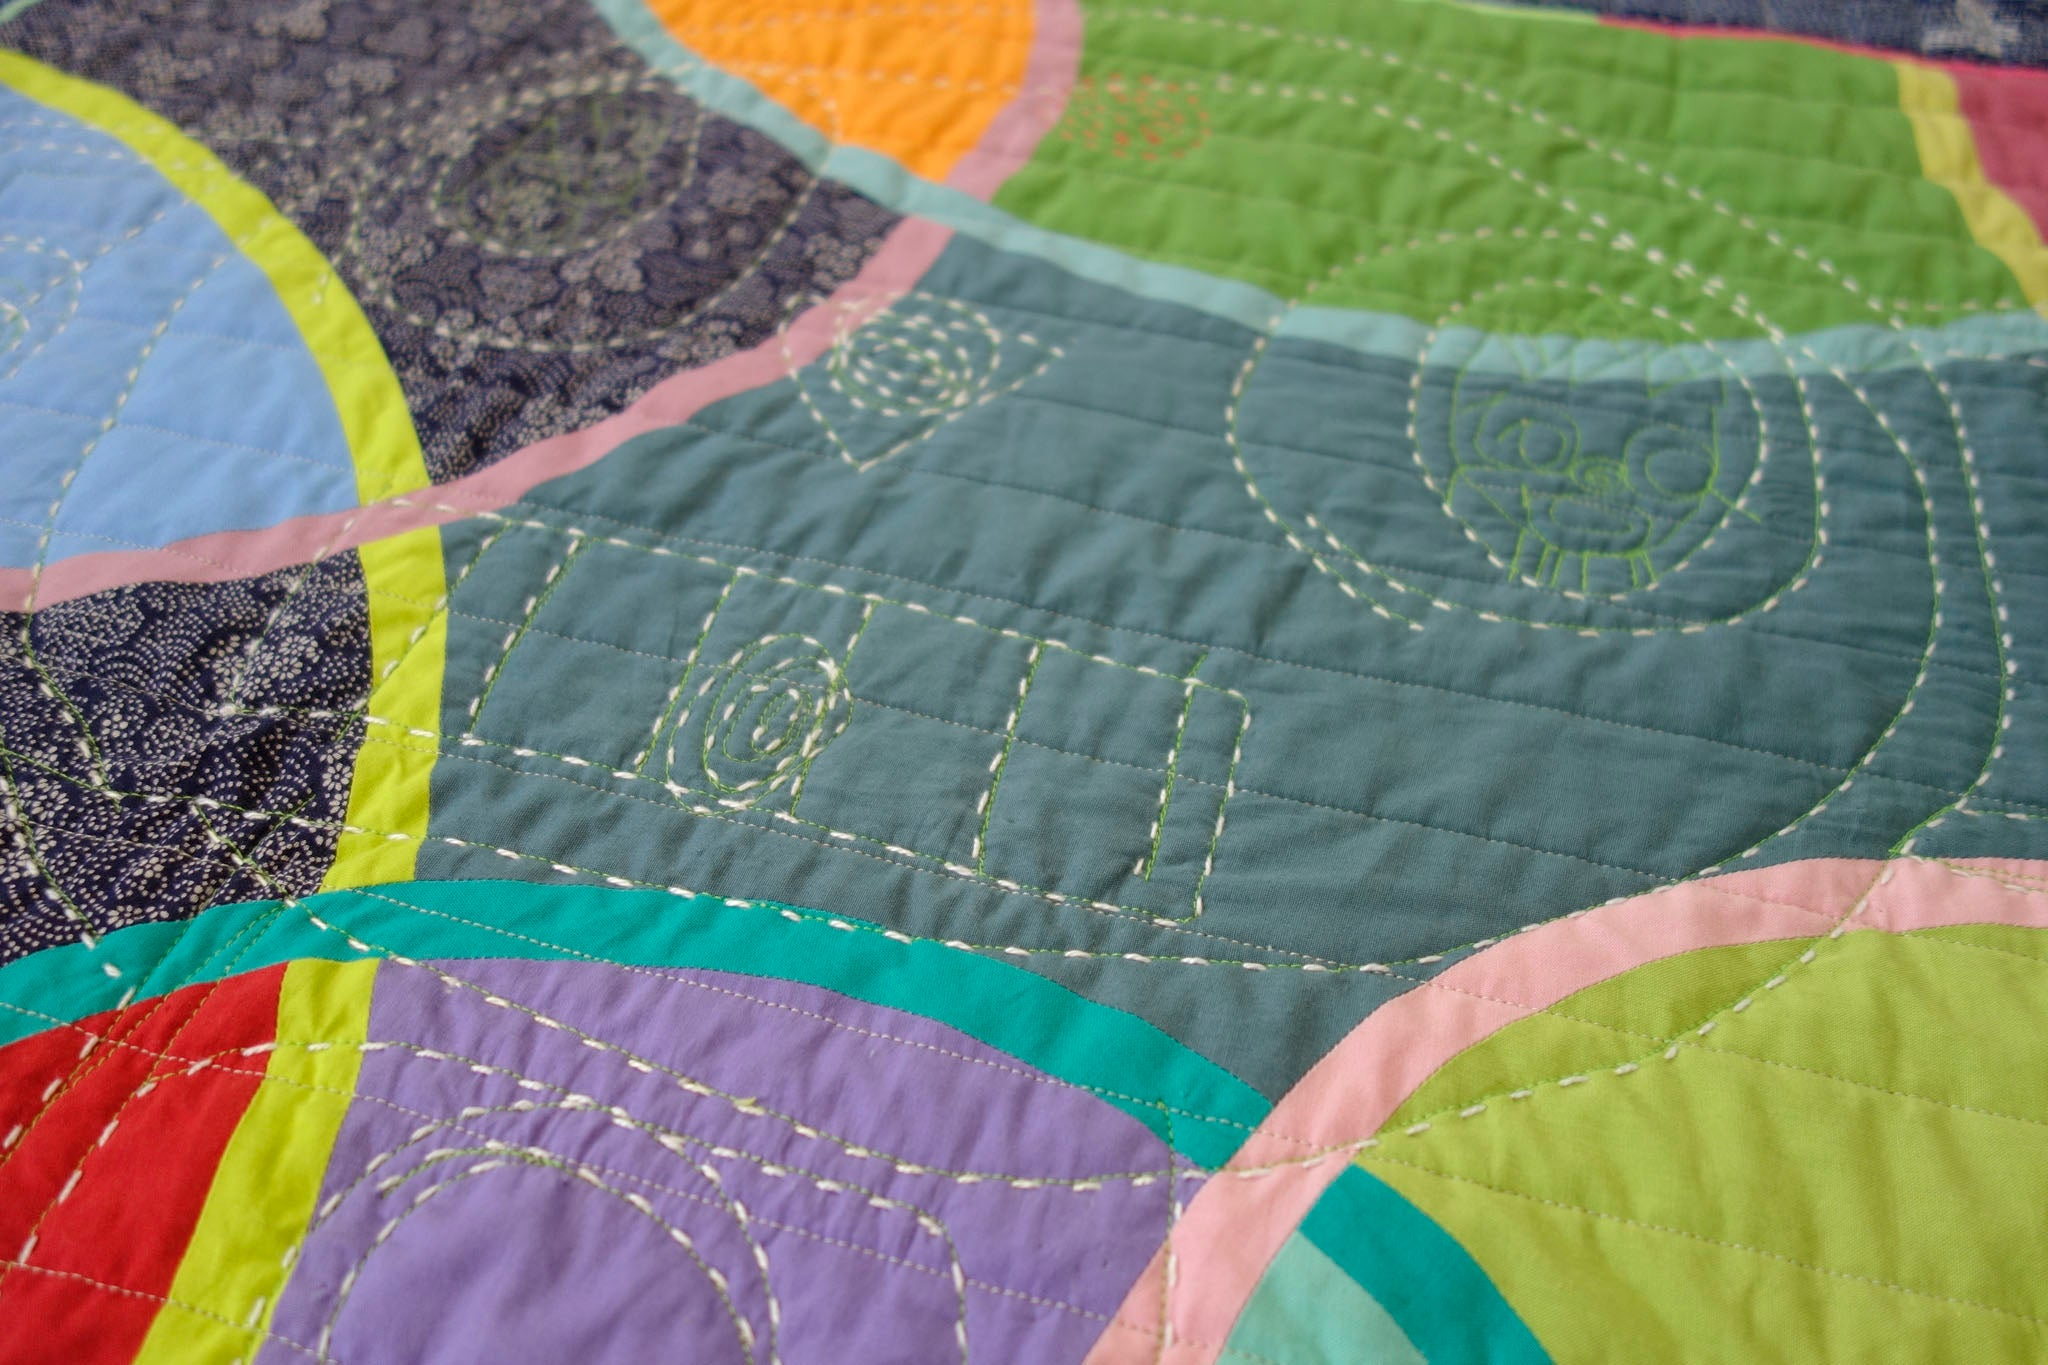 Watermelon From Mars quilt by Patricia Belyea